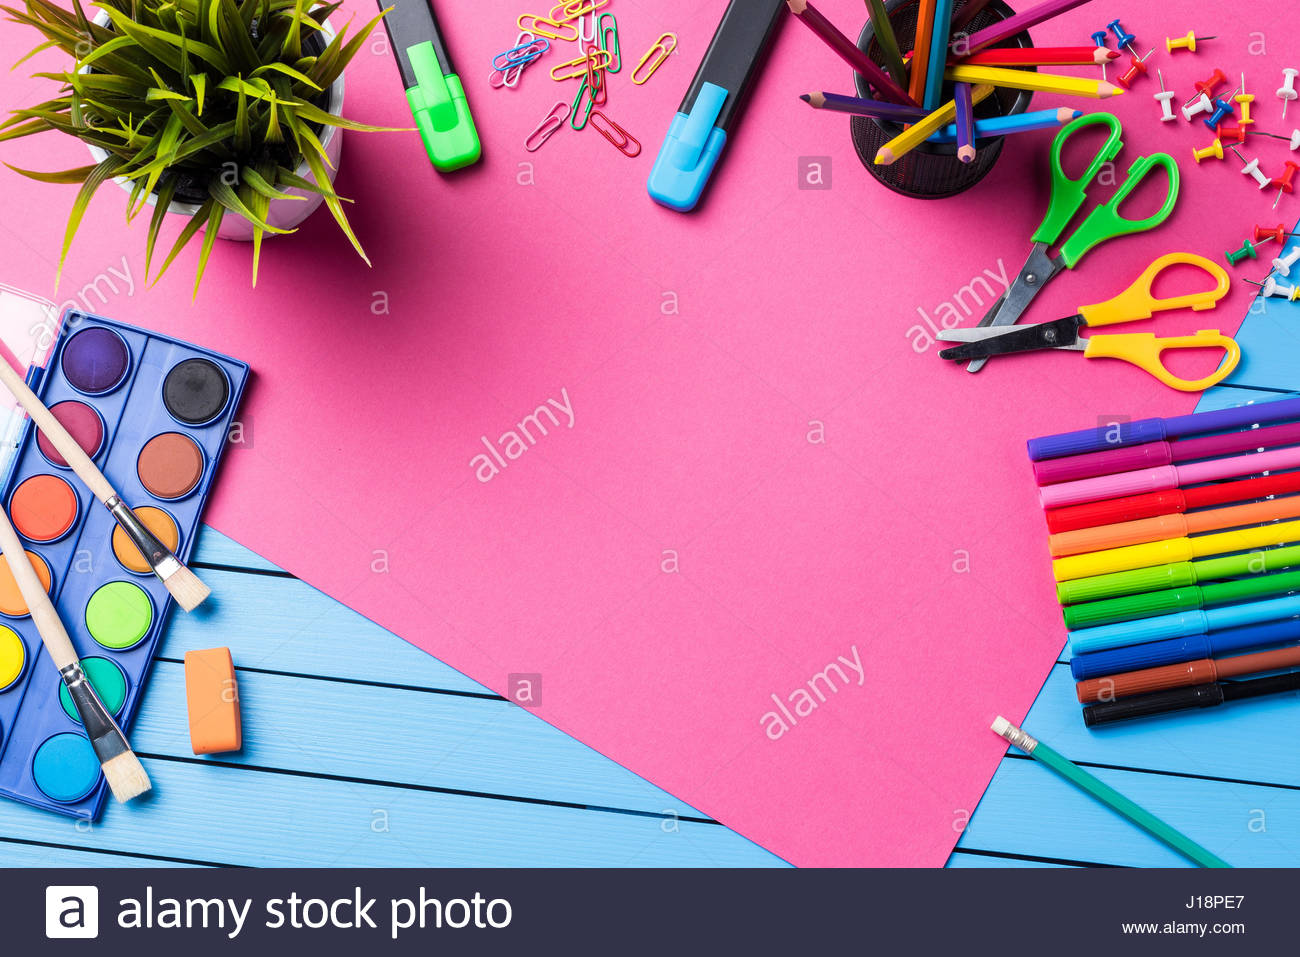 Free Download School Or Art Background Stock Photo 138490863 Alamy  [1300x957] For Your Desktop, Mobile & Tablet   Explore 44+ Art Backgrounds    Wallpaper Art, Art Wallpaper, Art Wallpapers